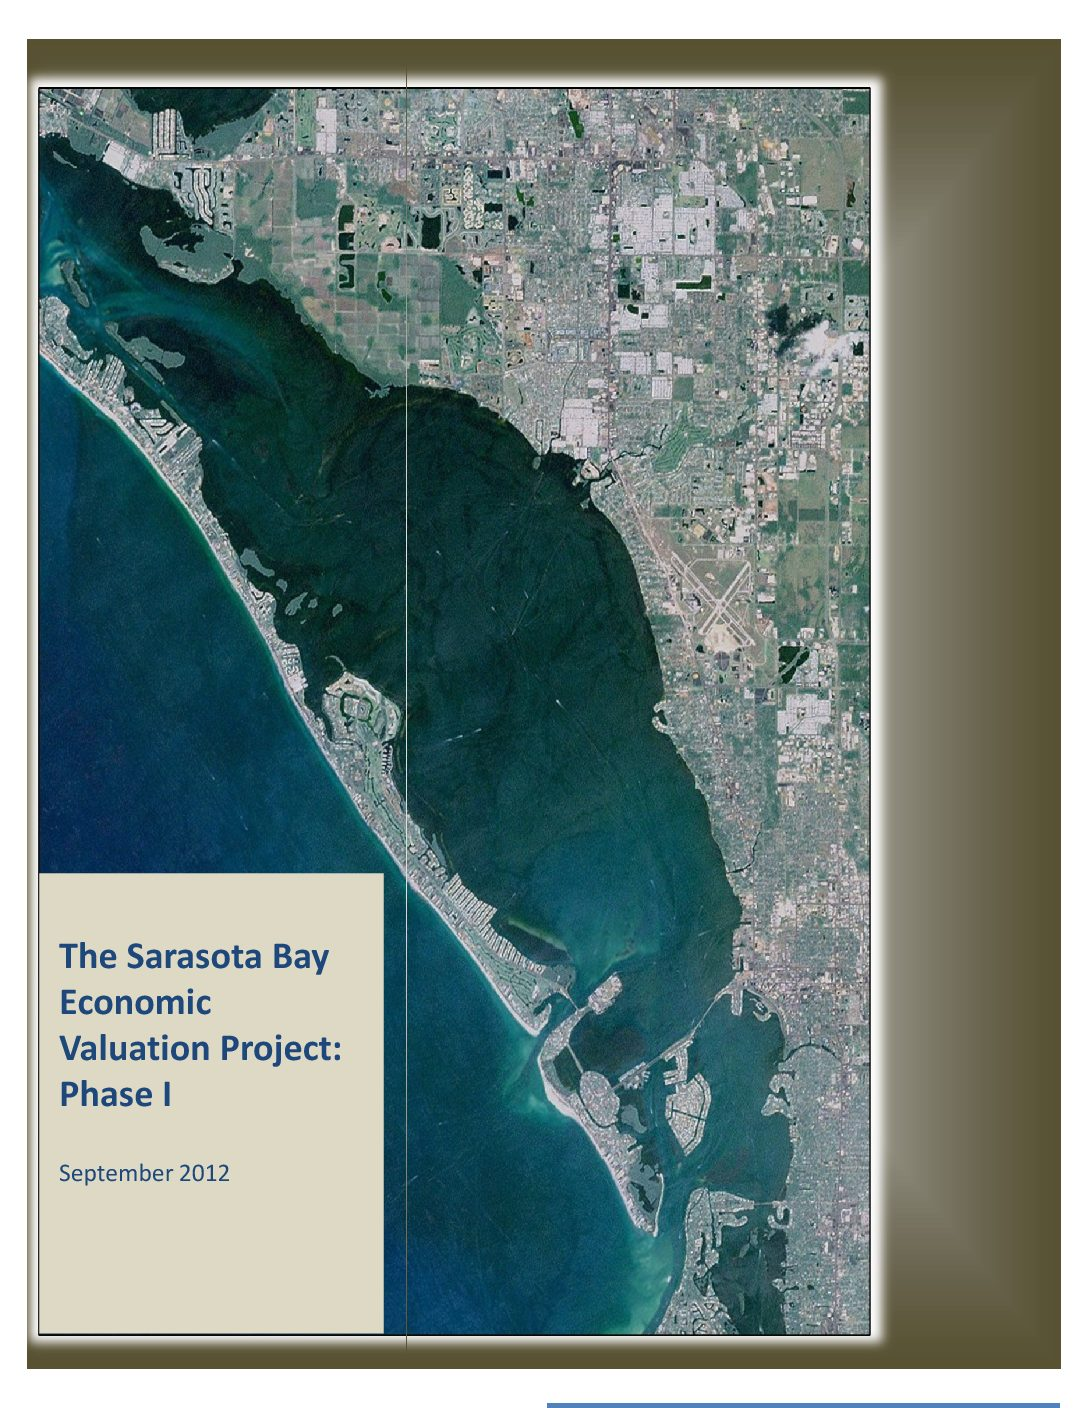 Sarasota Bay Economic Valuation Study Phase I